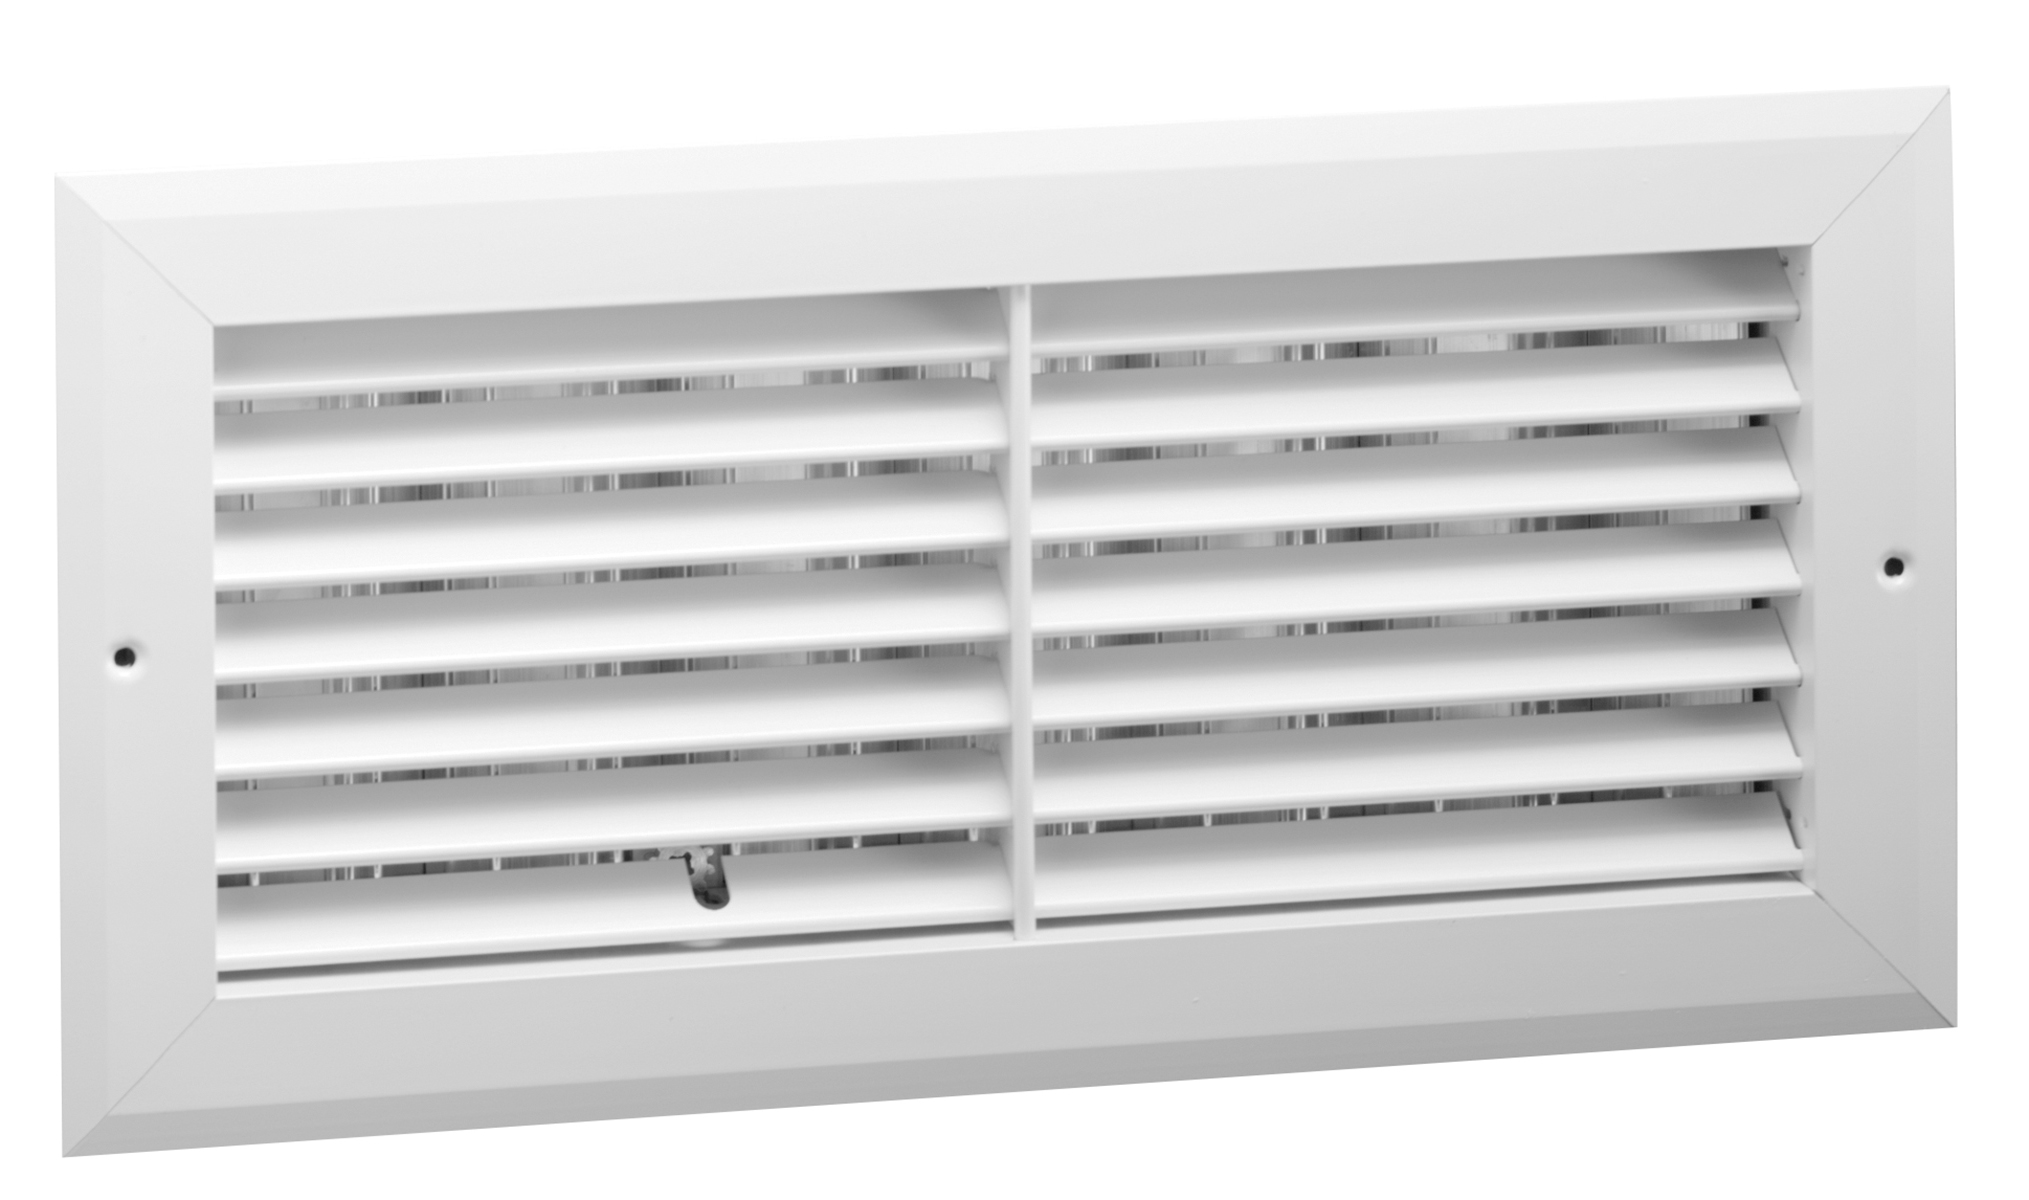 Rhd45 Aluminum Return Air Grille 45 Degree Fixed Blade